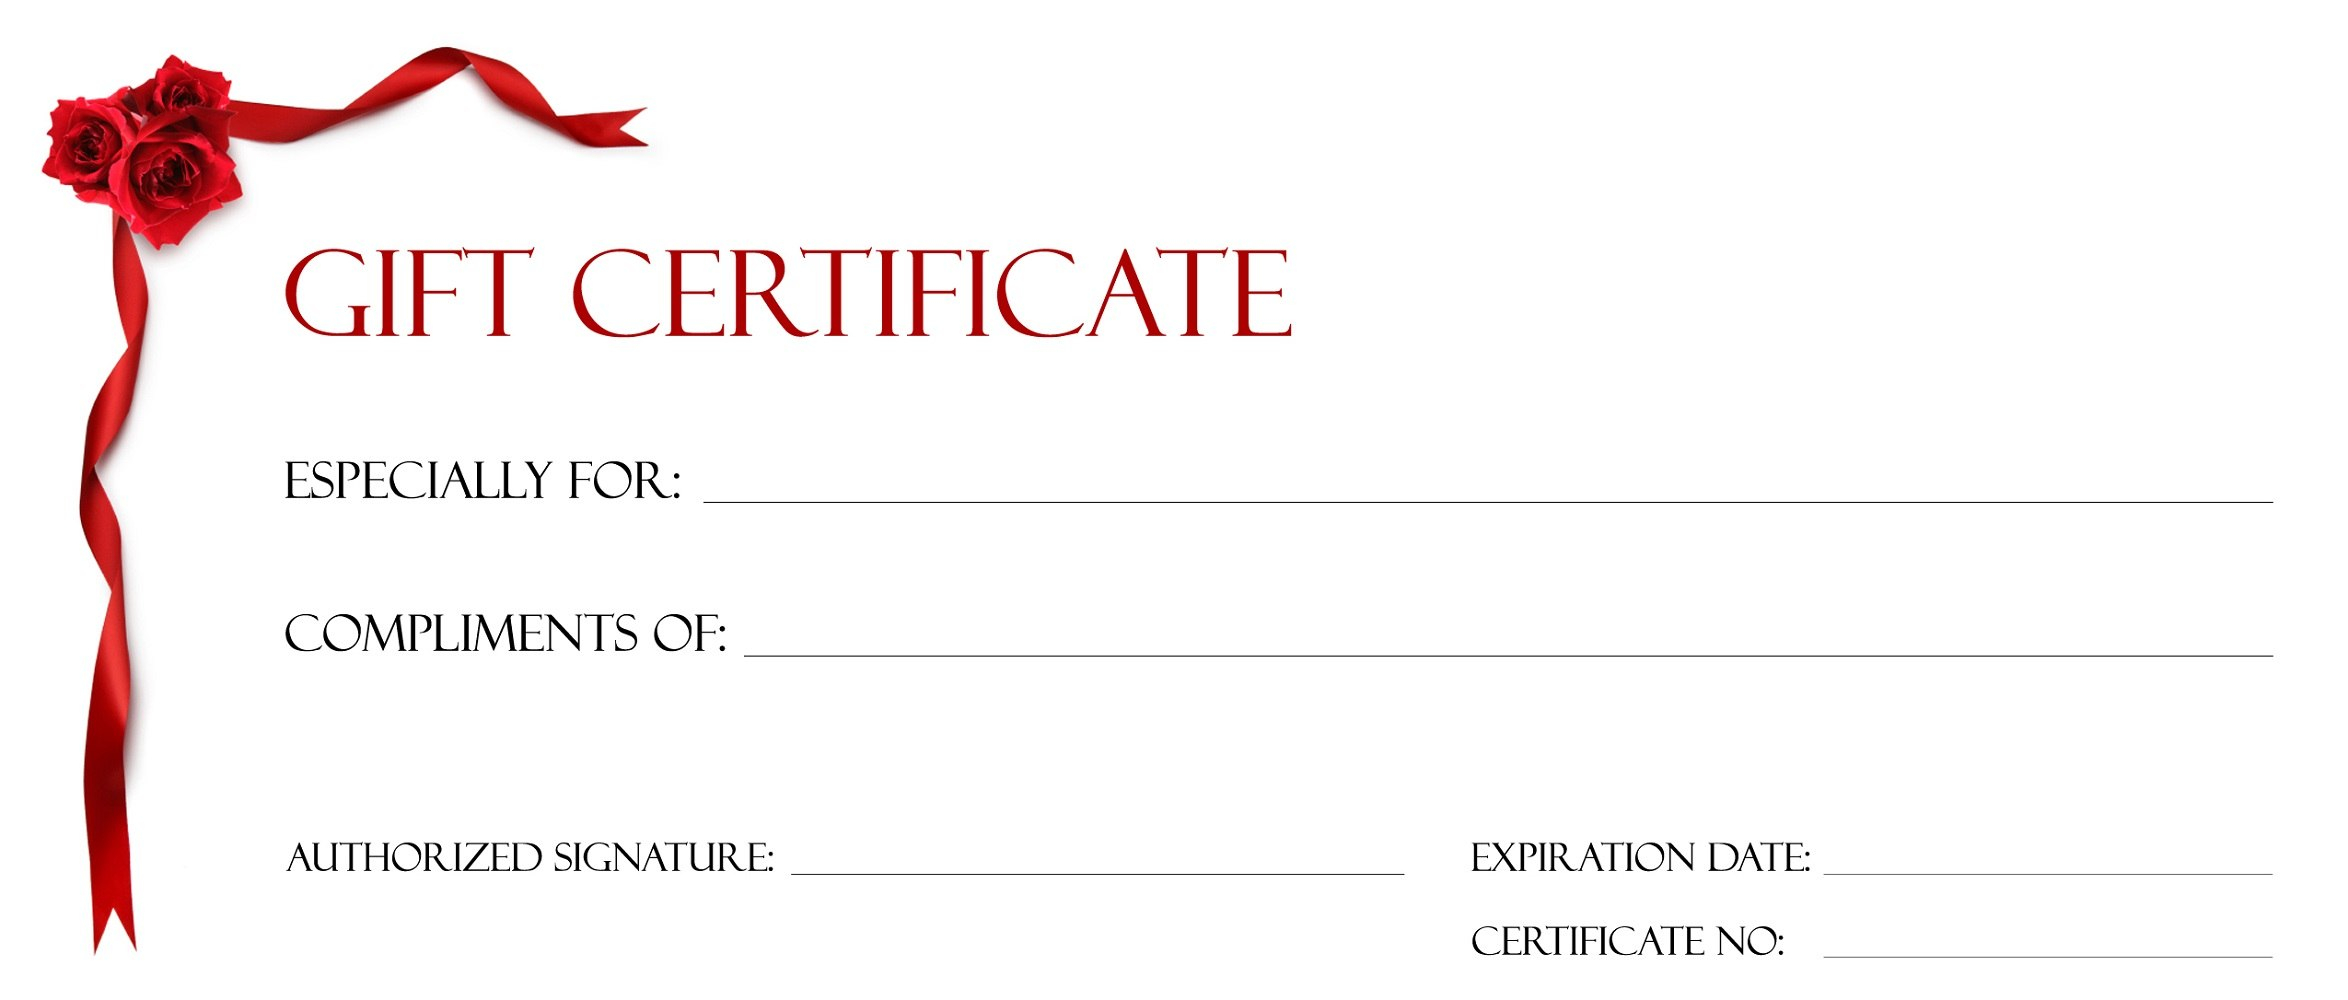 Gift Certificate Template Design Ideas Unusual For Free Download With Christmas Gift Certificate Template Free Download